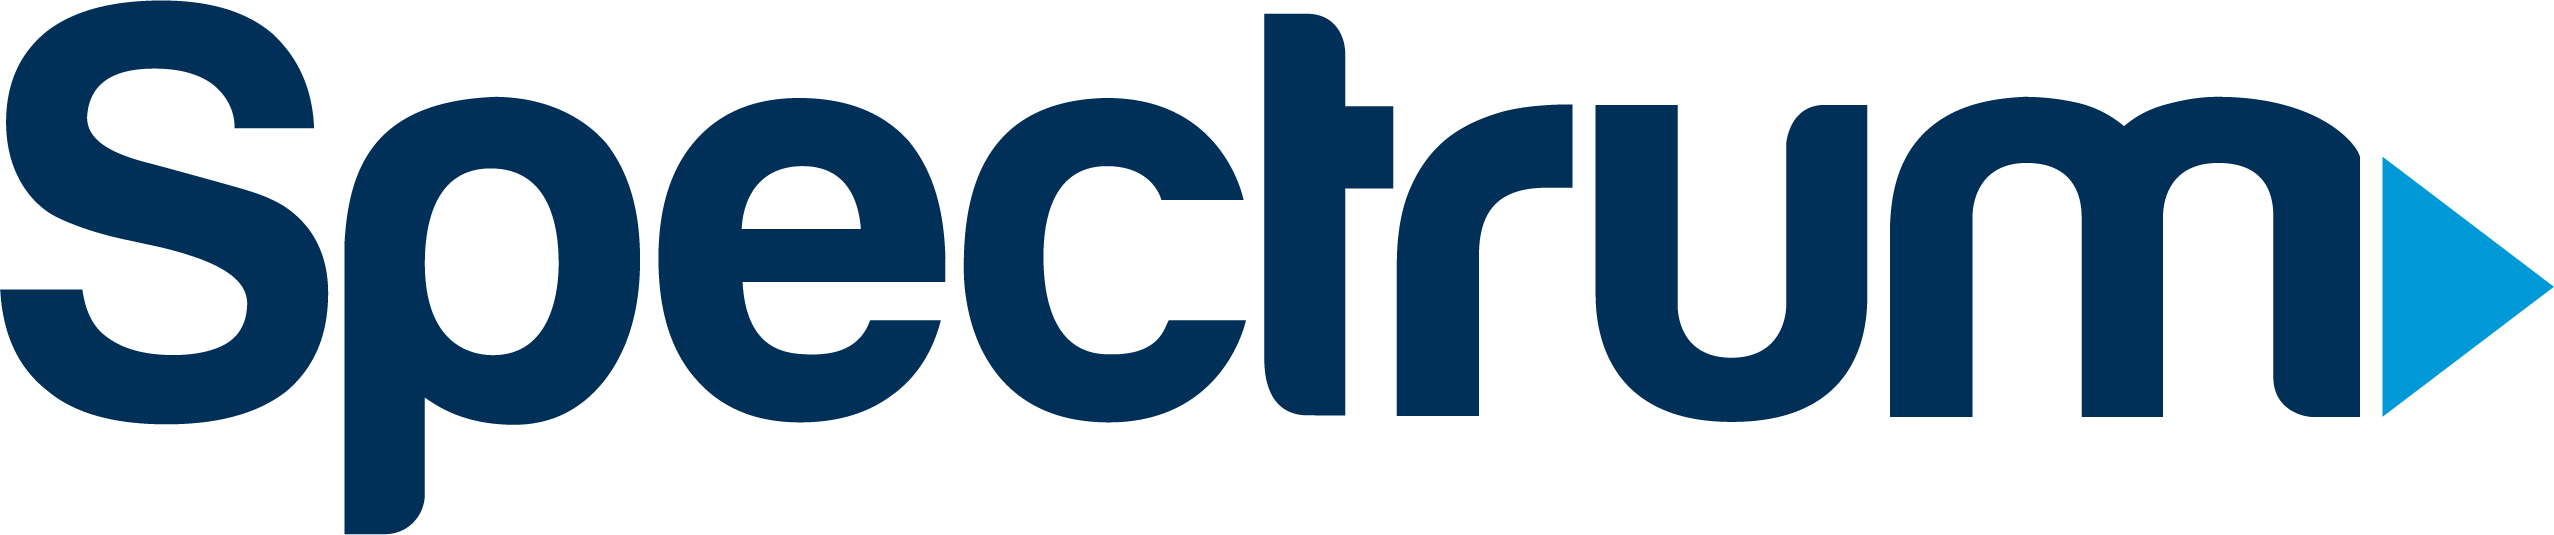 Corporate logo for Spectrum